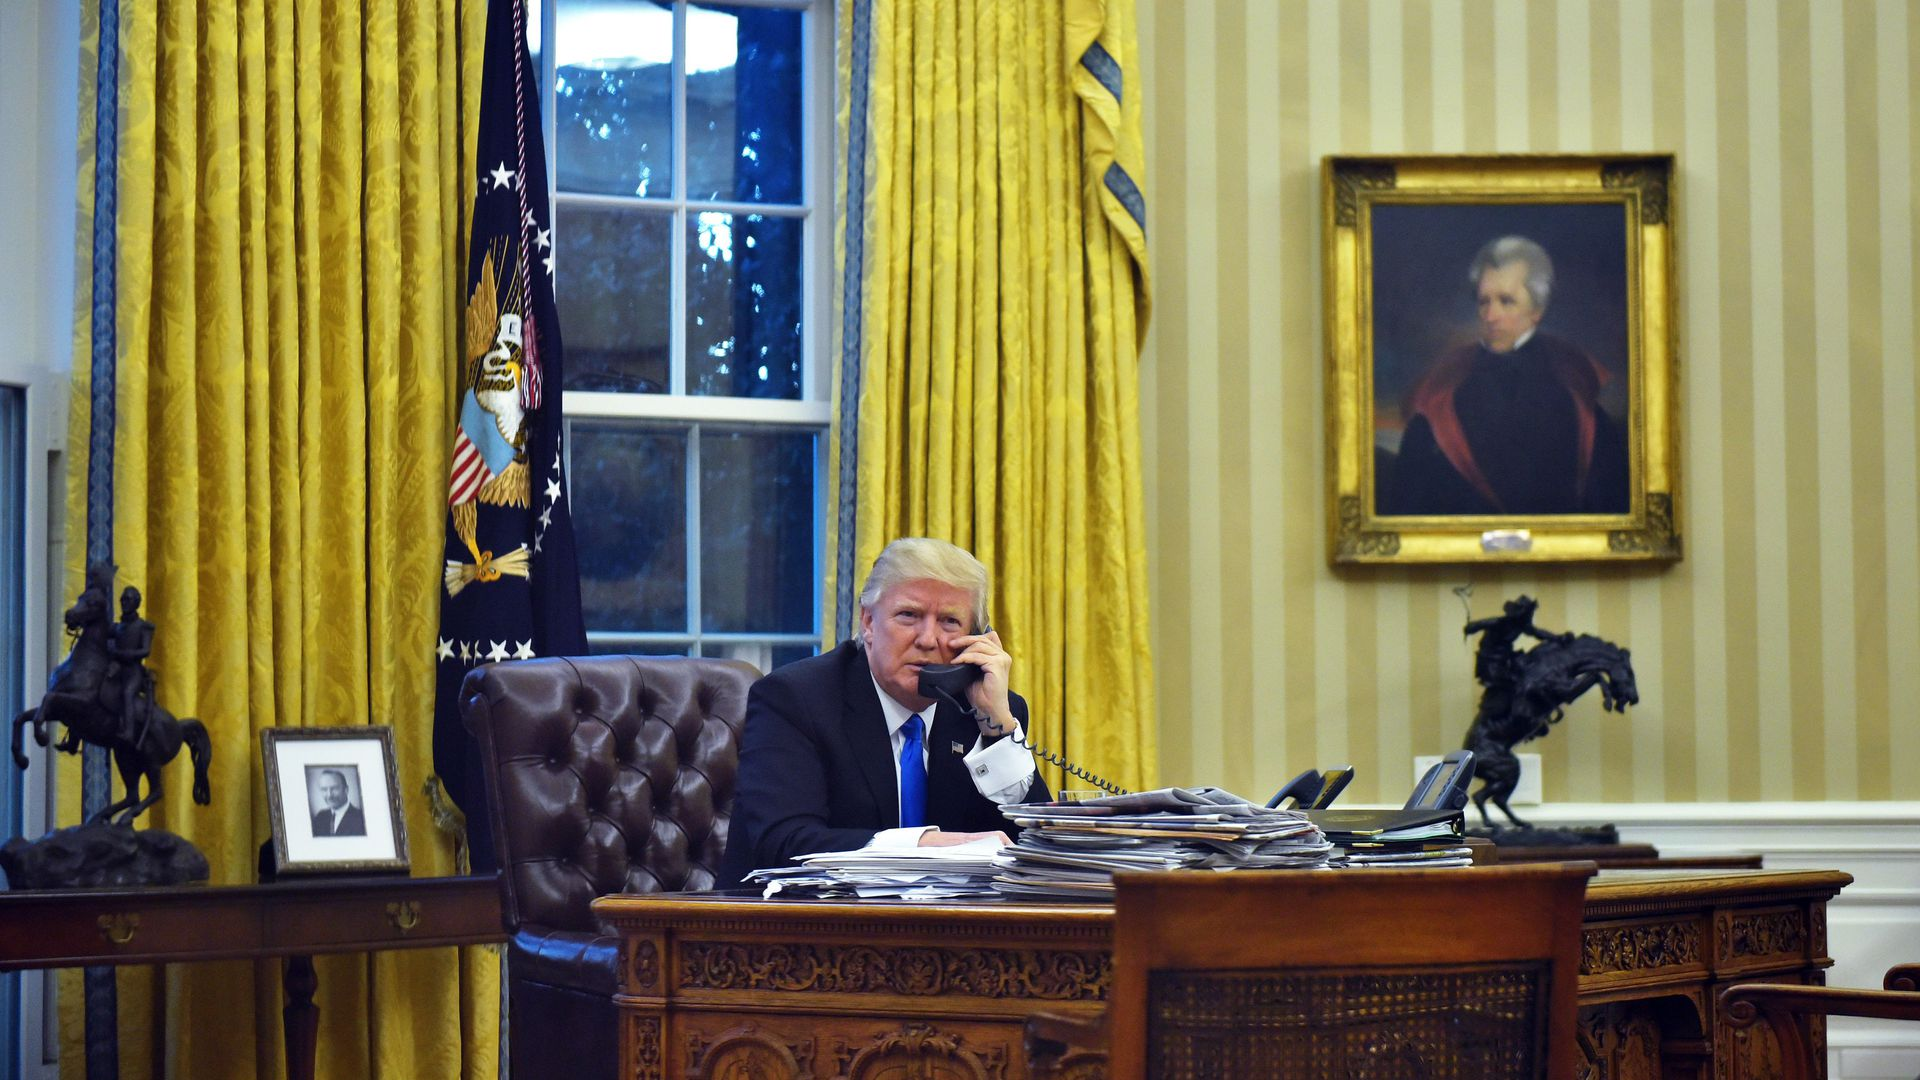 Trump on the phone in the Oval Office